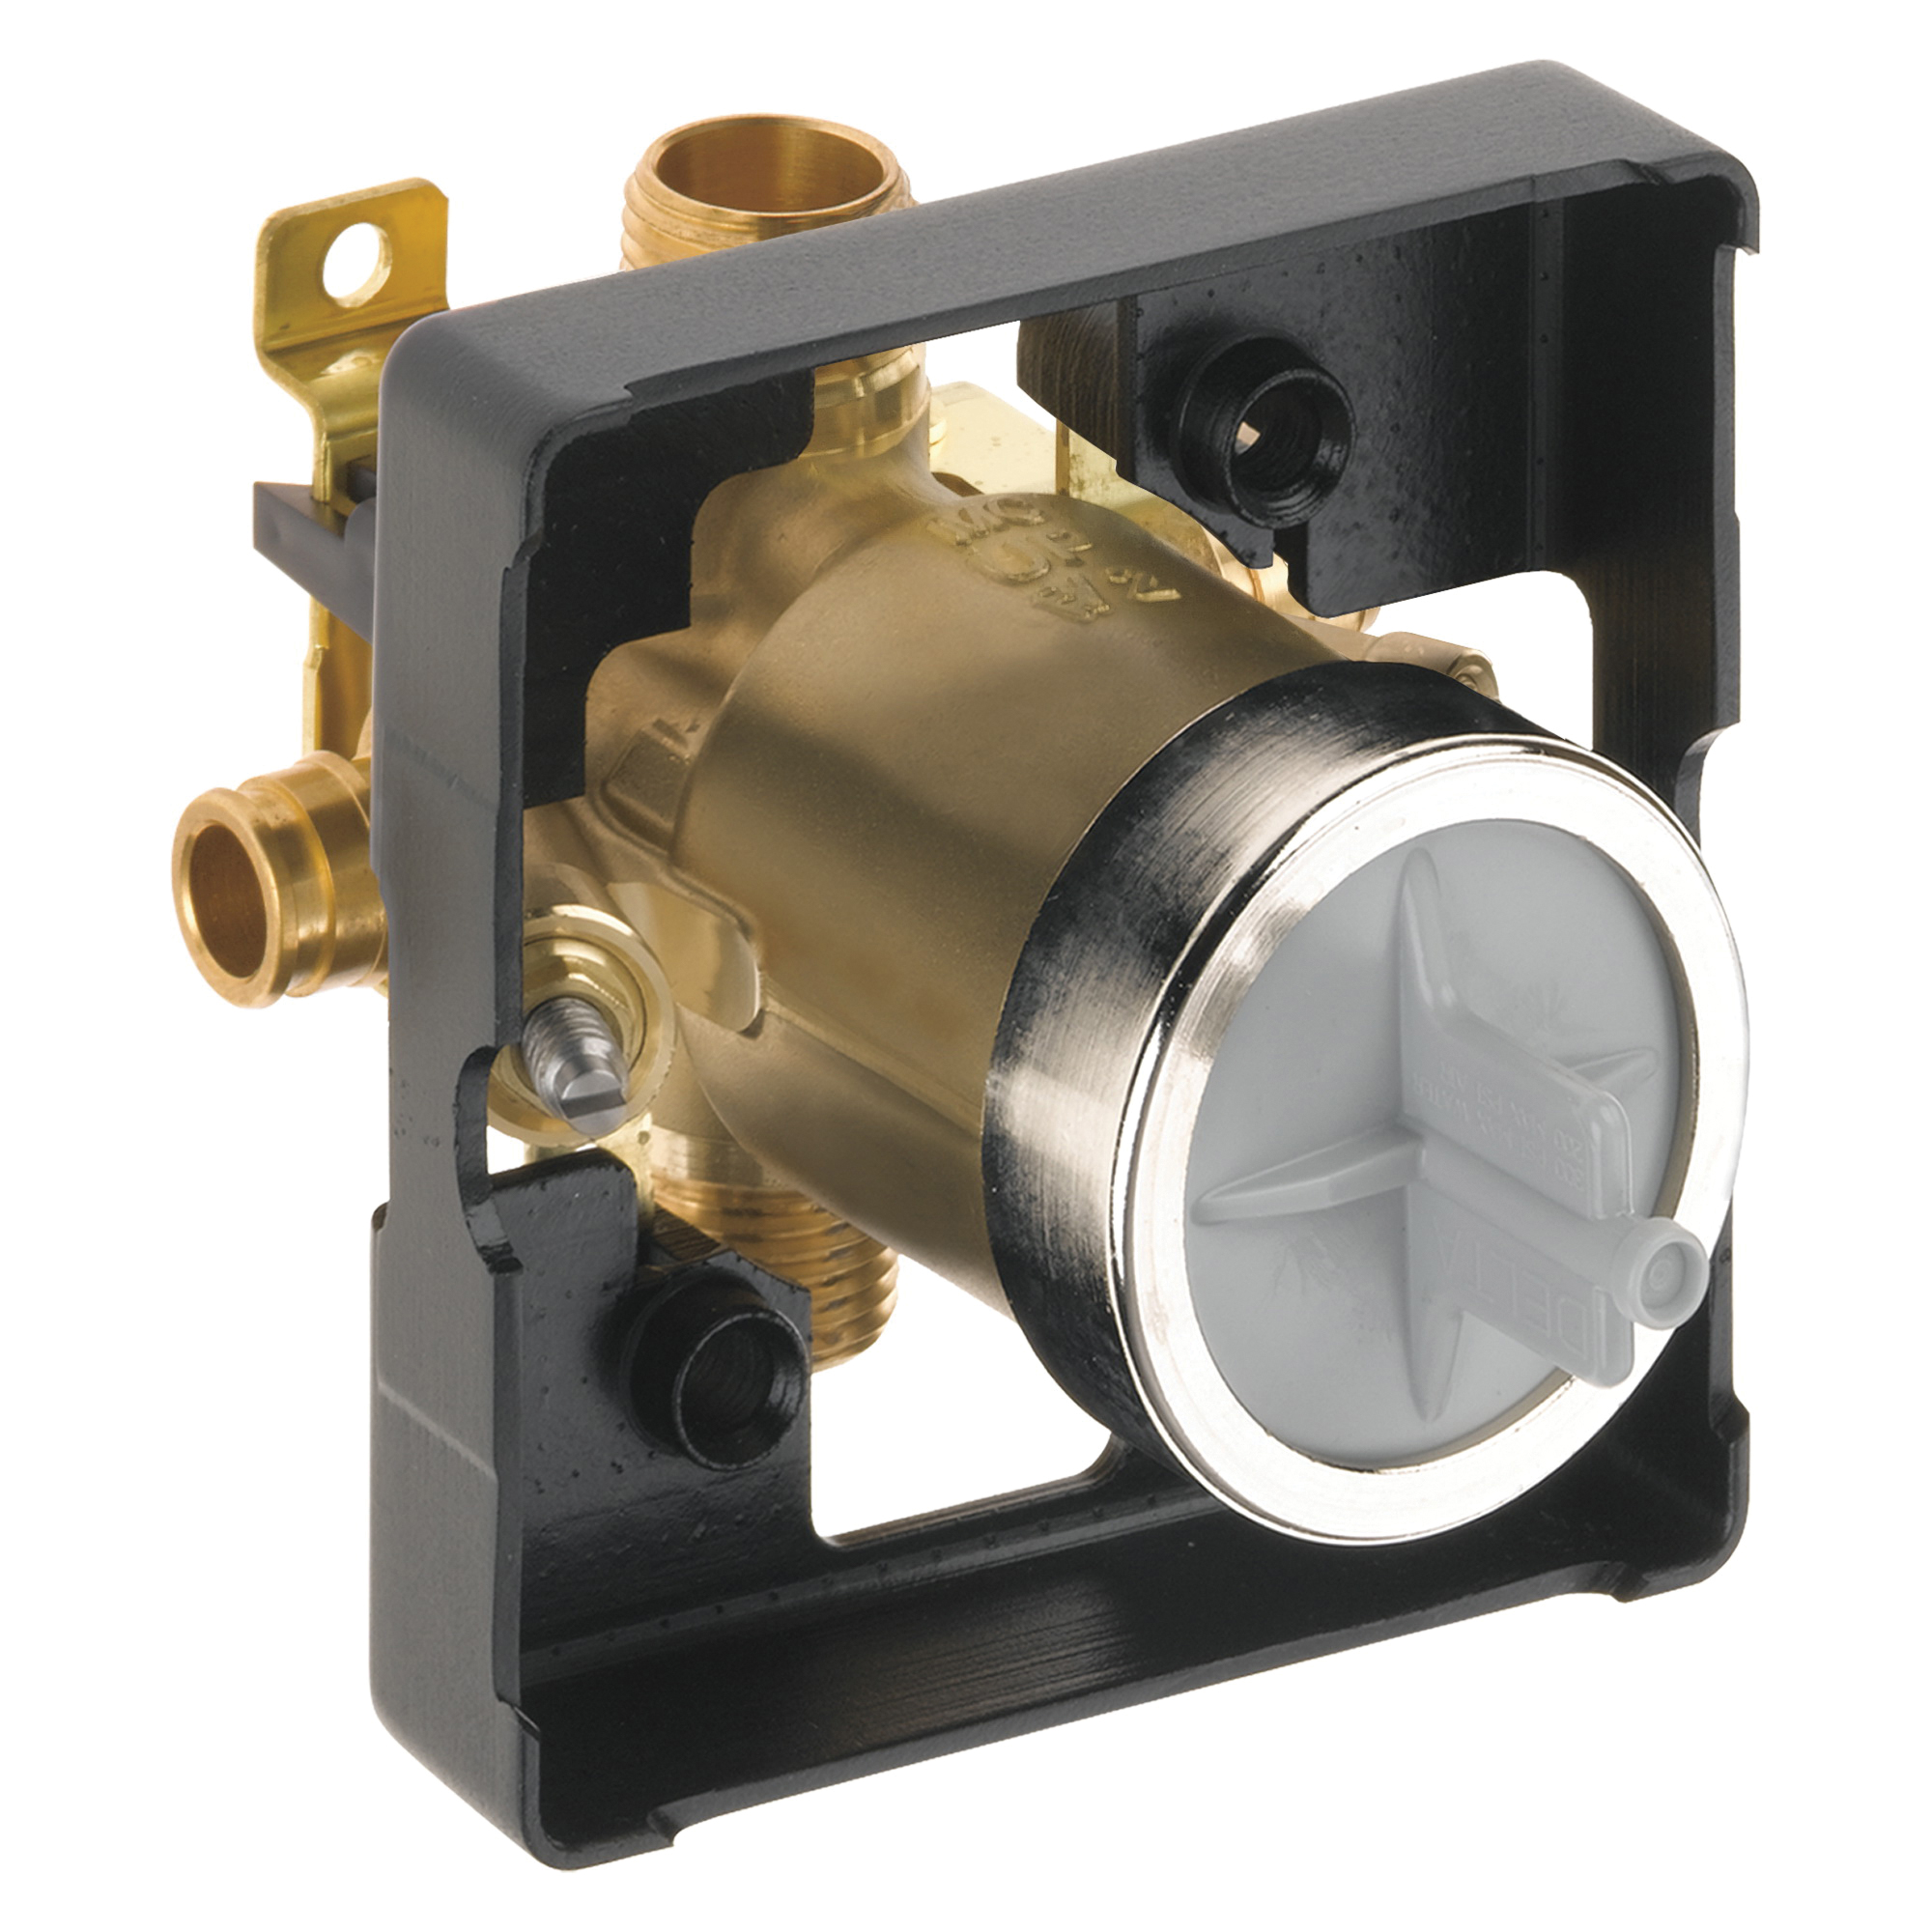 DELTA® R10000-MFWS MultiChoice® Universal Tub and Shower Rough-In Valve Body, 1/2 in Cold Expansion PEX Inlet x 1/2 in Pex Cold Expansion Outlet, Forged Brass Body, Domestic